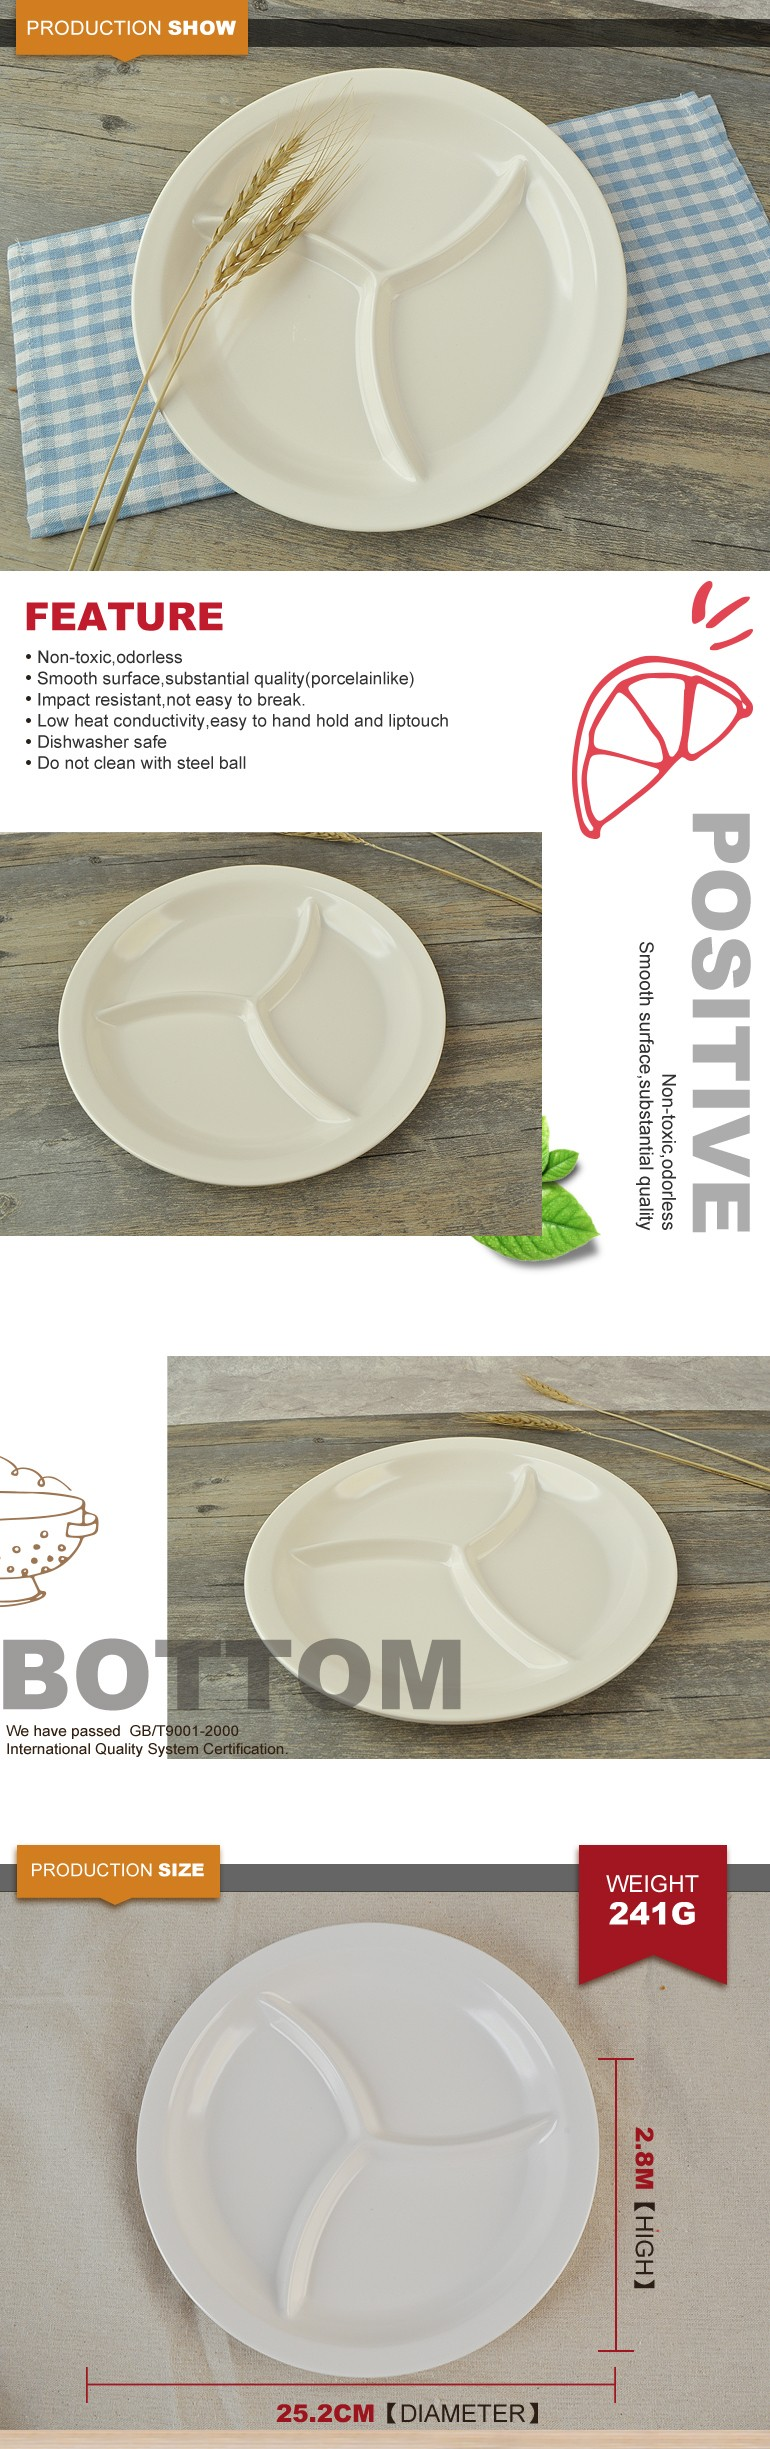 Hot selling new products plastic 3 compartment melamine plate for sale & Hot Selling New Products Plastic 3 Compartment Melamine Plate For ...